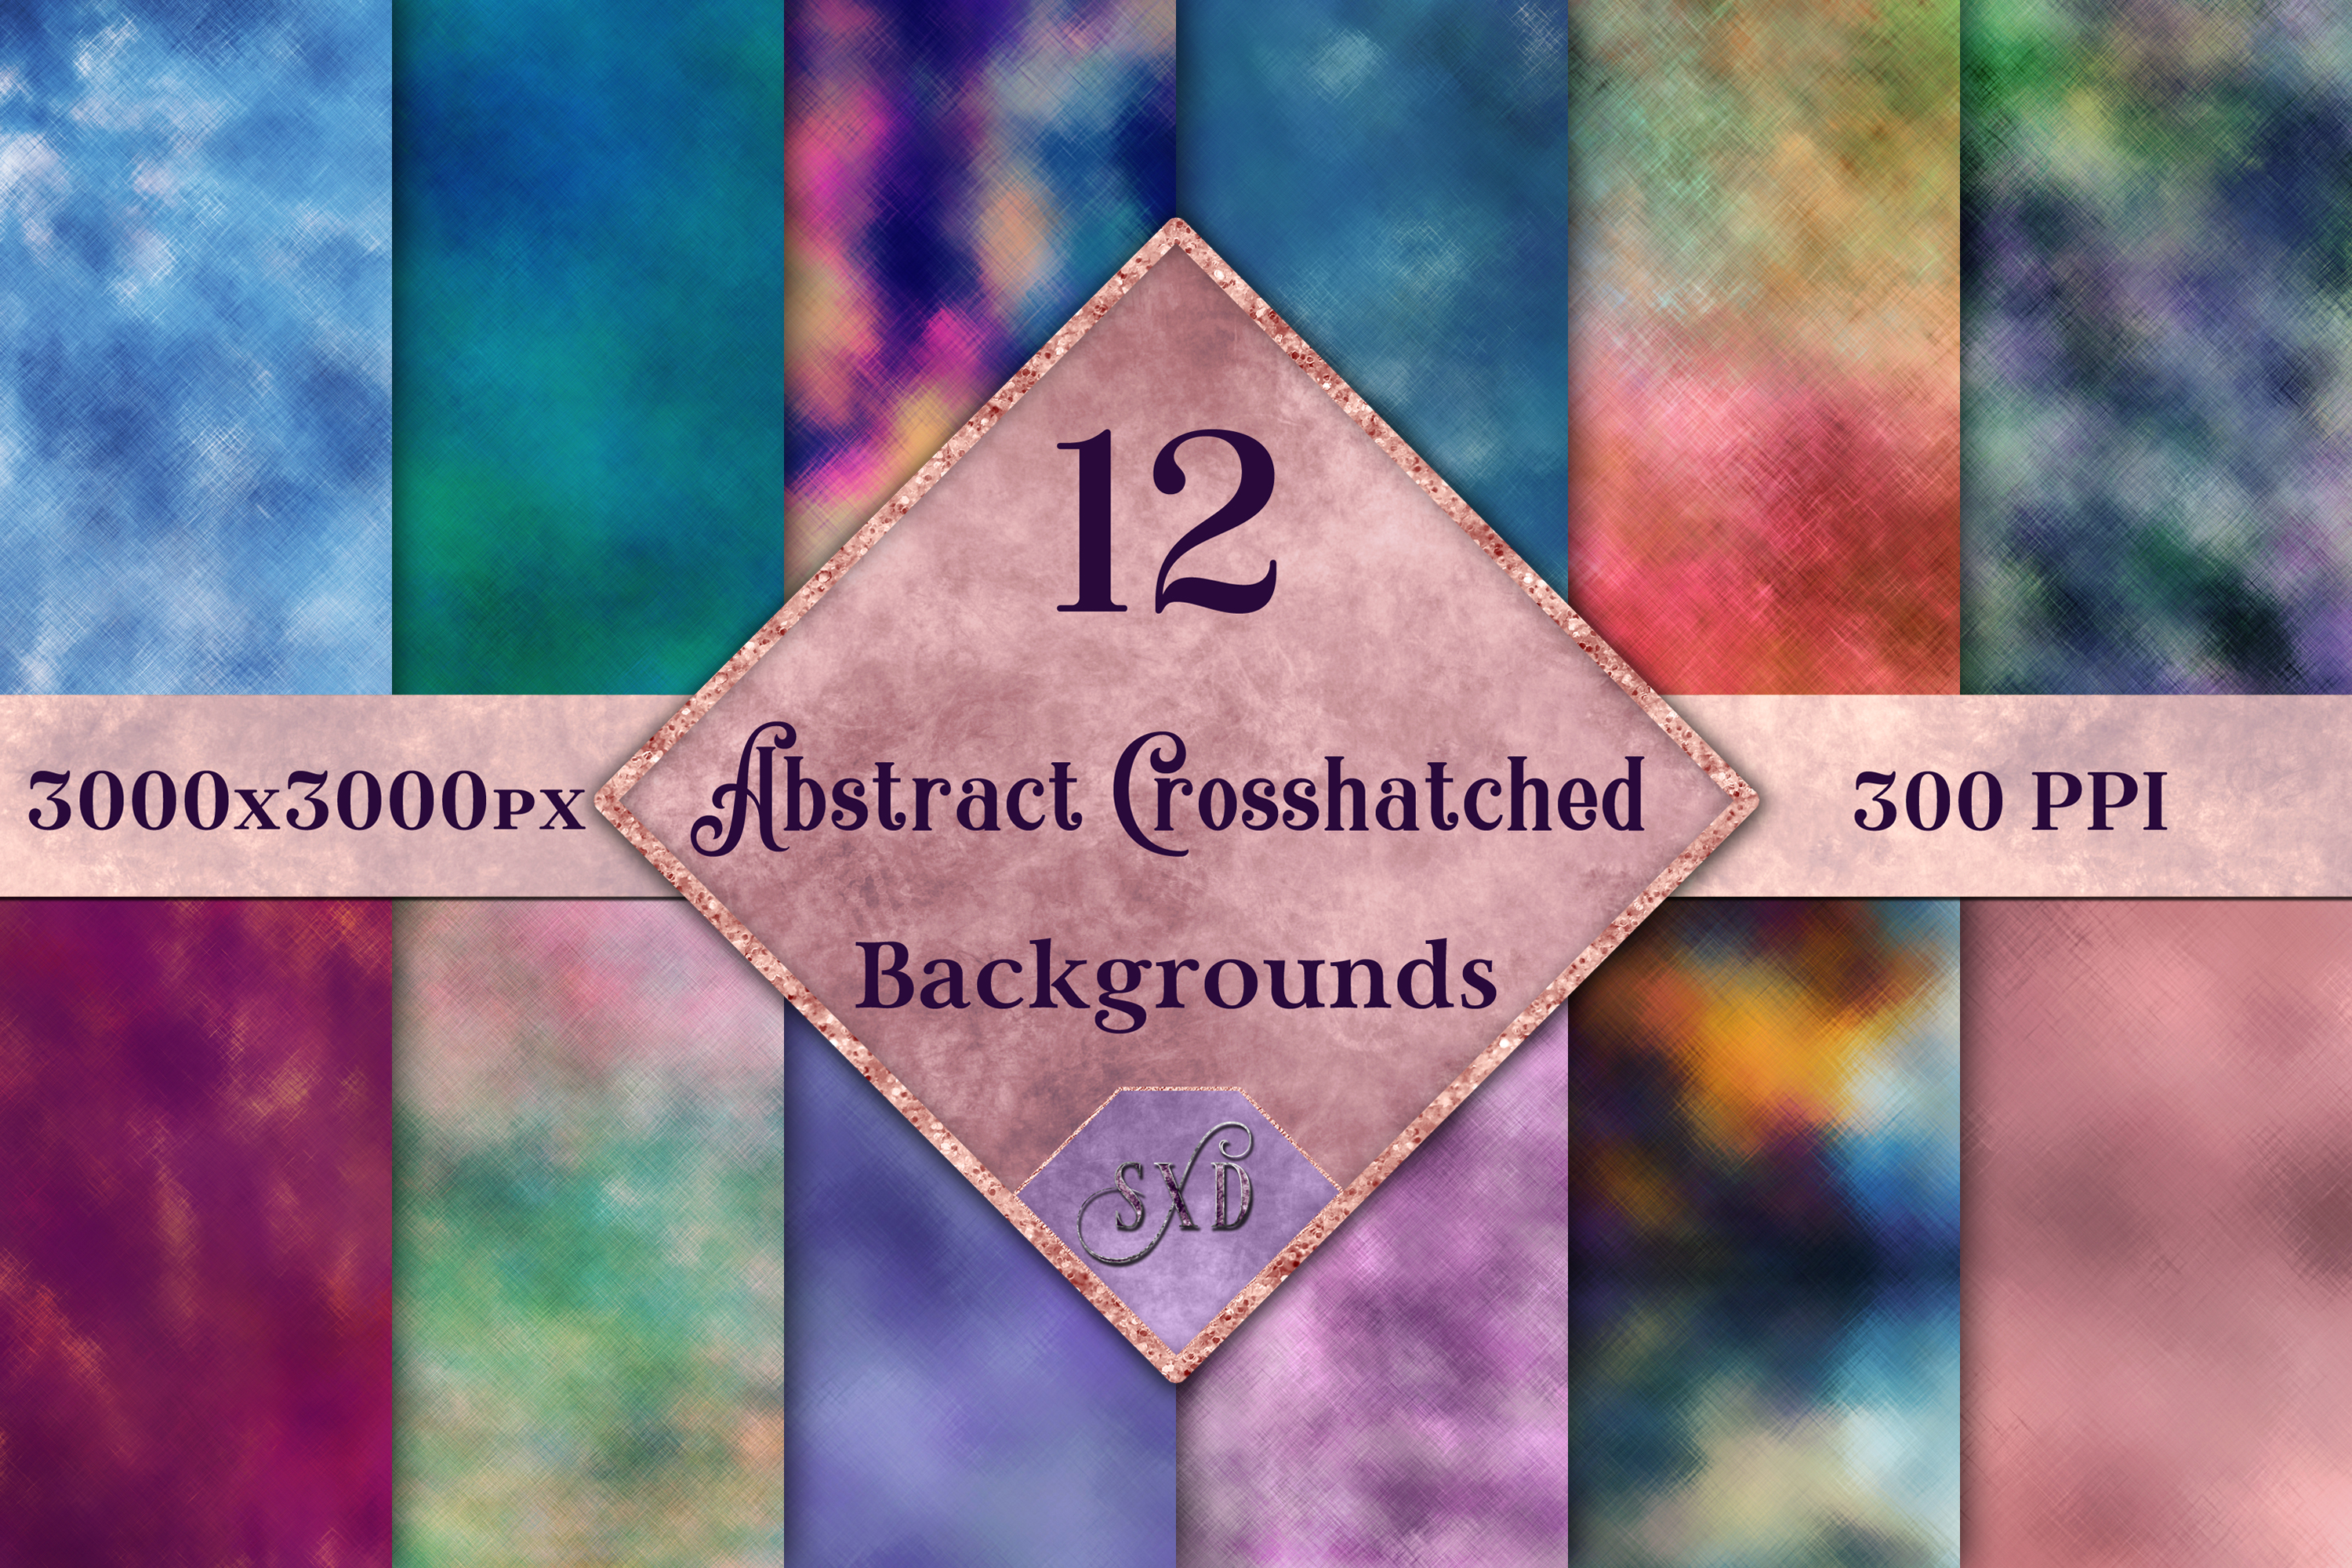 Download Free Abstract Crosshatched Backgrounds 12 Image Set Graphic By Sapphirexdesigns Creative Fabrica for Cricut Explore, Silhouette and other cutting machines.